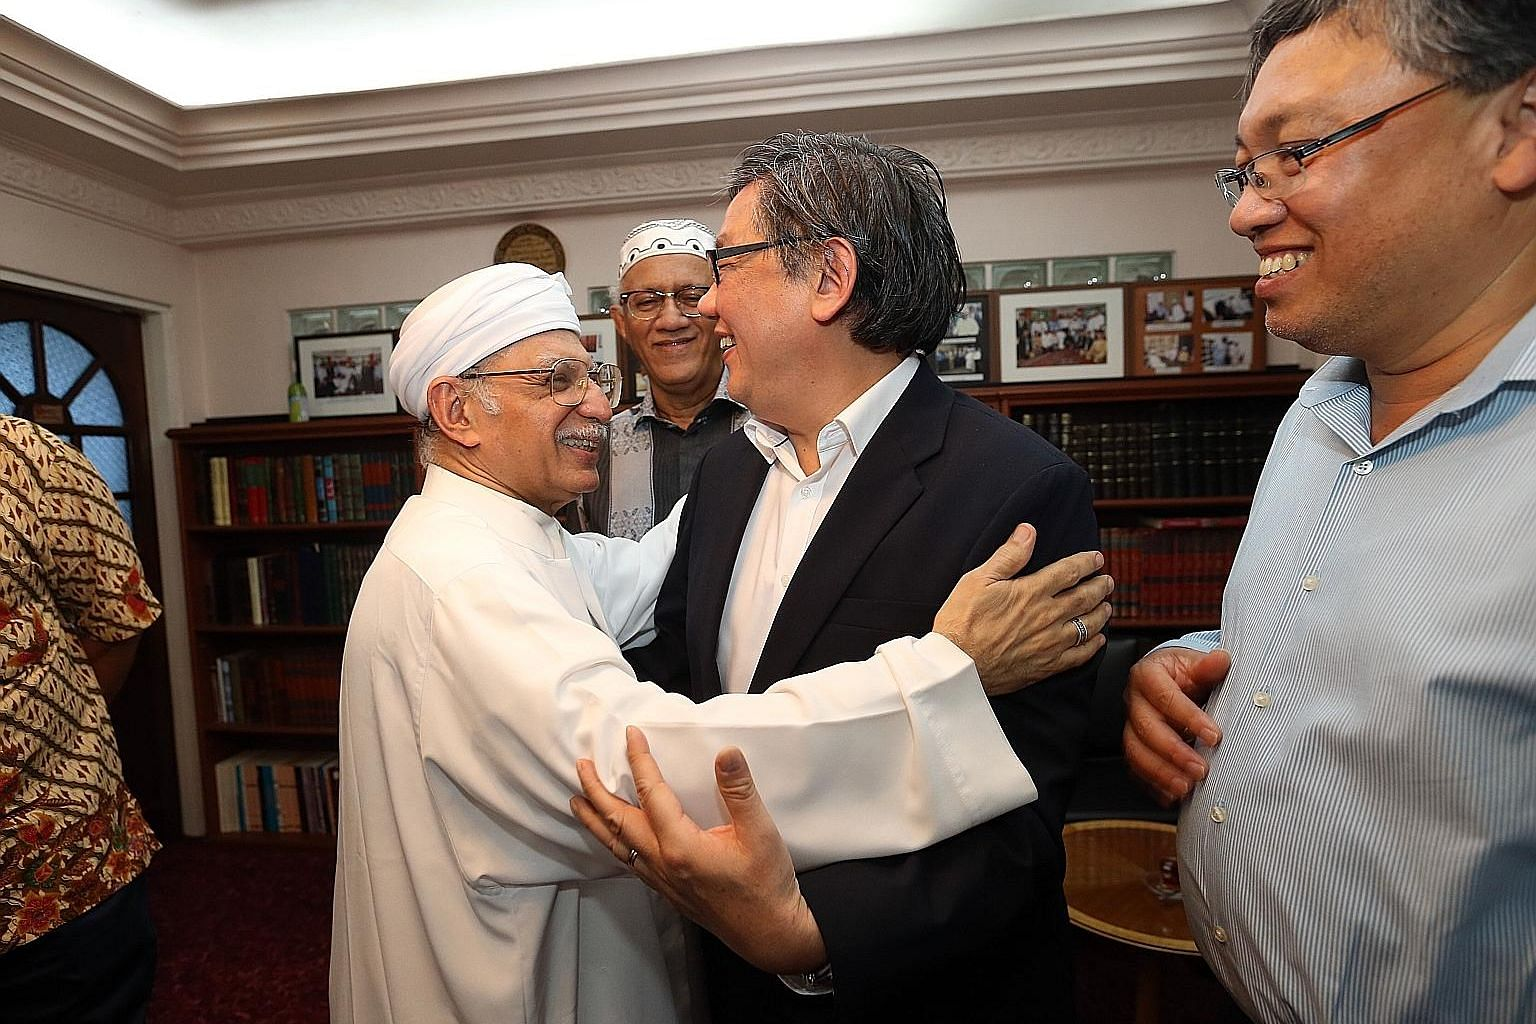 Ba'alwie Mosque's Imam Habib Hassan Al-Attas embracing Pastor Yang Tuck Yoong. Other guests at the meeting included Mr Mohamed Abdullah Alhabshee (centre), the husband of President Halimah Yacob, and Malaysian High Commissioner to Singapore Zulkifli